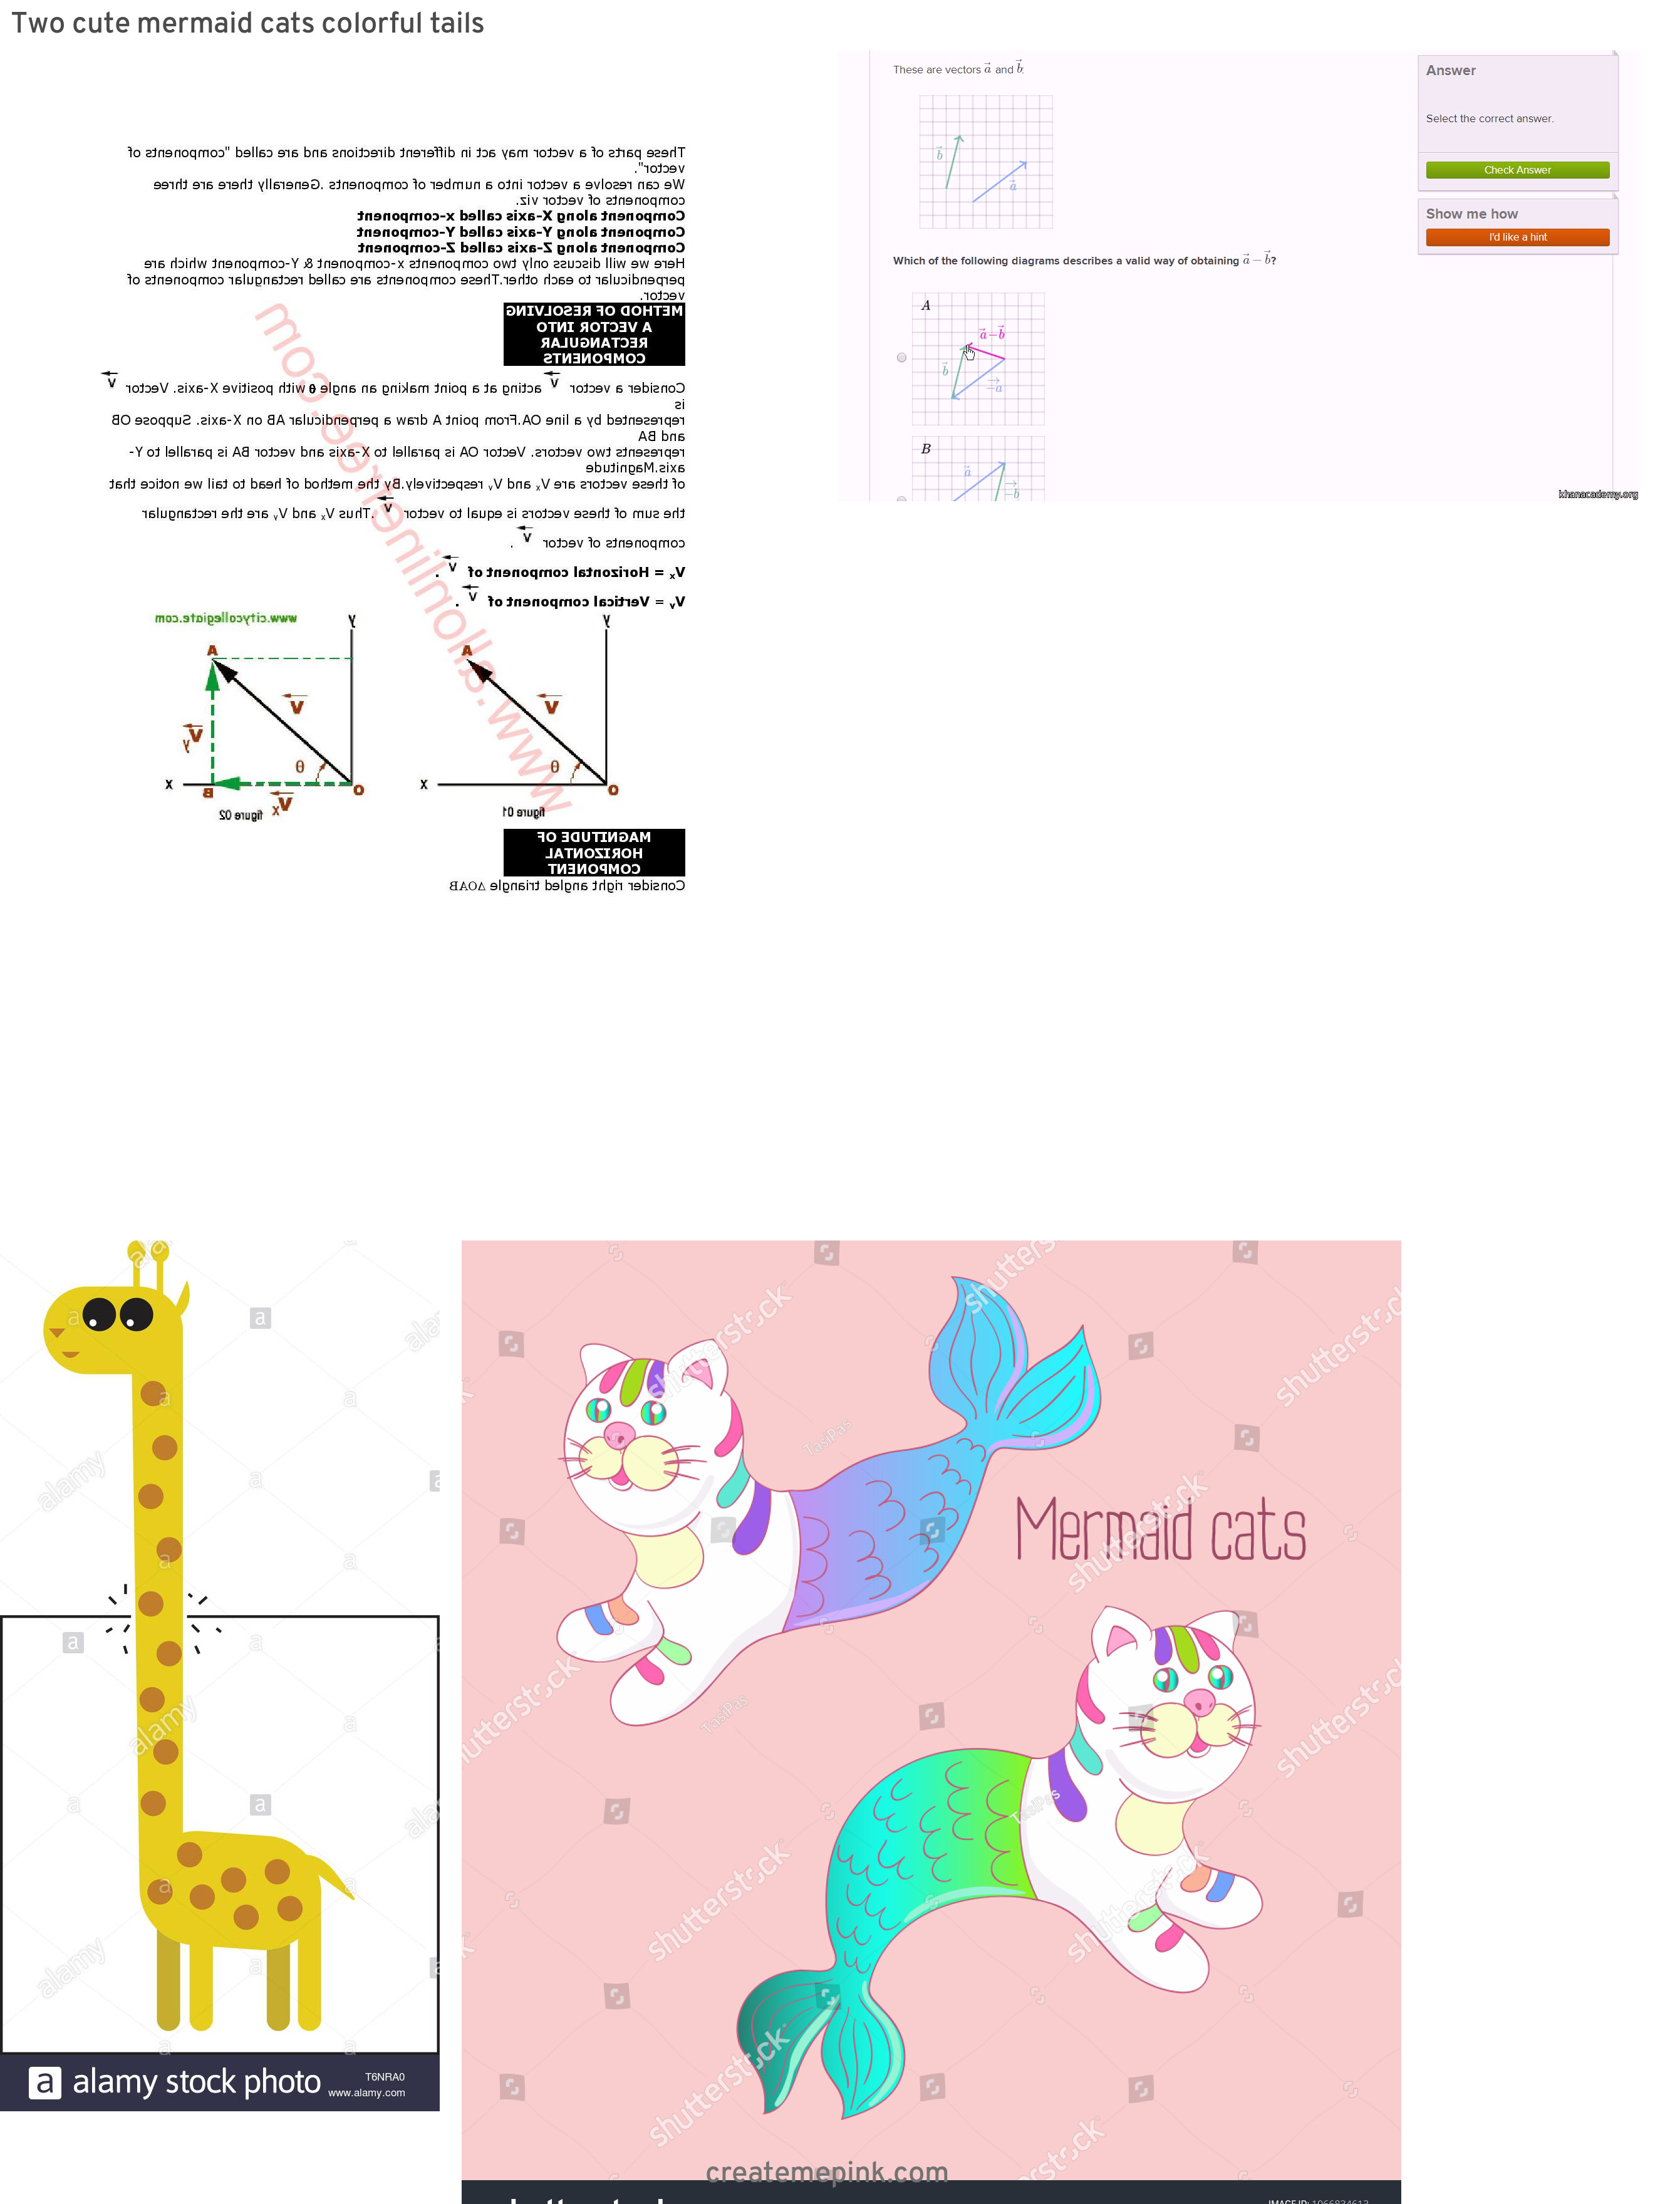 Two Vectors Tail To Tail: Two Cute Mermaid Cats Colorful Tails